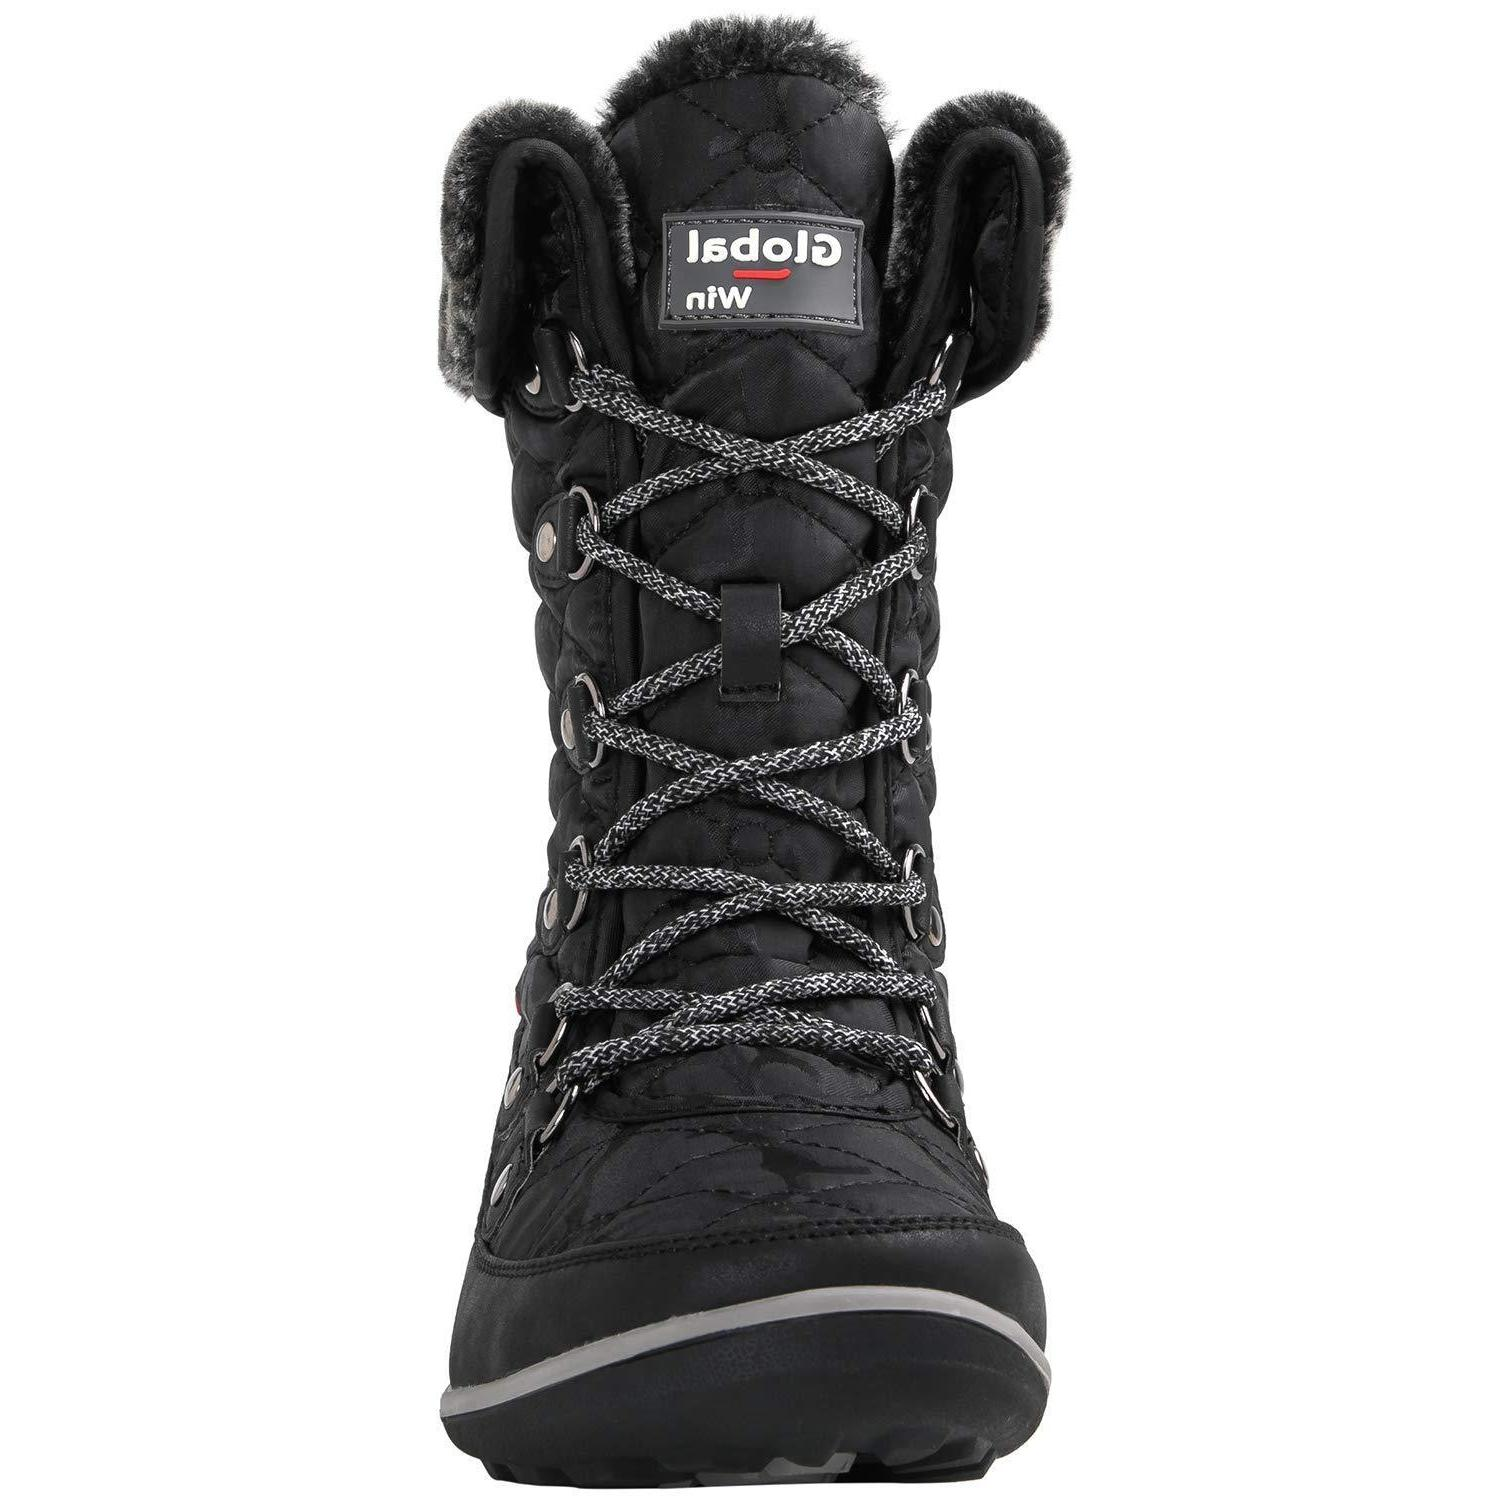 Globalwin Women's 1839 Snow